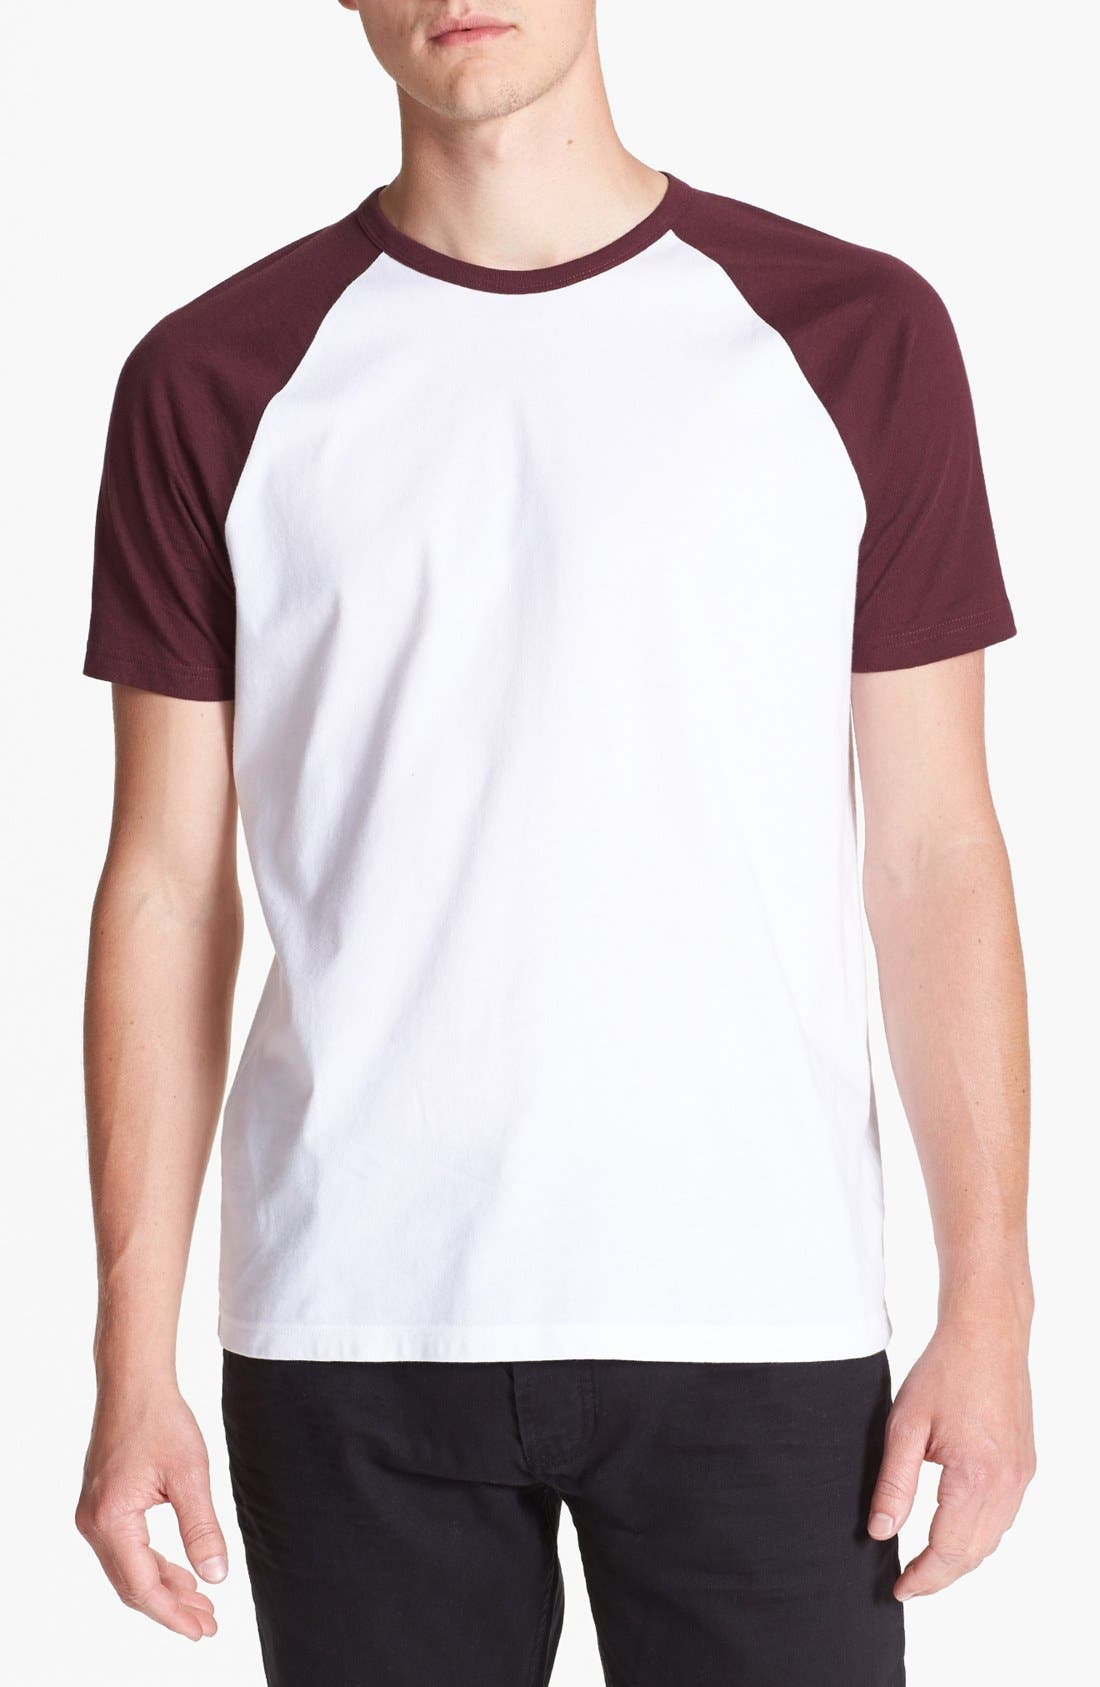 Alternate Image 1 Selected - Topman Short Sleeve Baseball T-Shirt